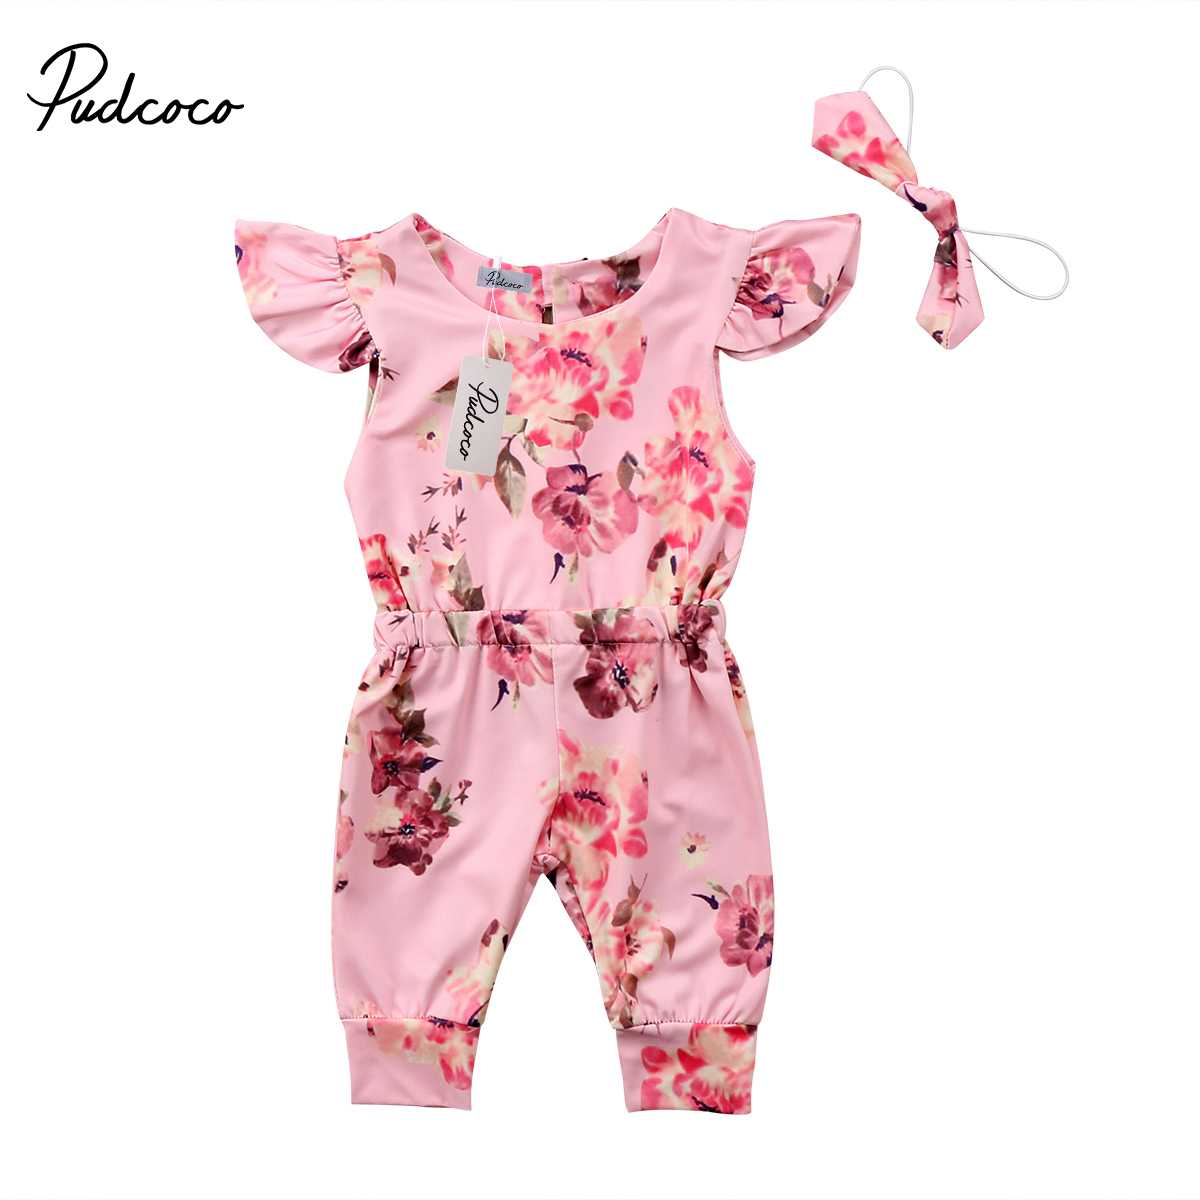 Pudcoco Toddler Infant Baby Girls Romper Floral Romper Sunsuit Summer Flying Sleeve Jumpsuit Cotton Clothes Outfit newborn baby backless floral jumpsuit infant girls romper sleeveless outfit